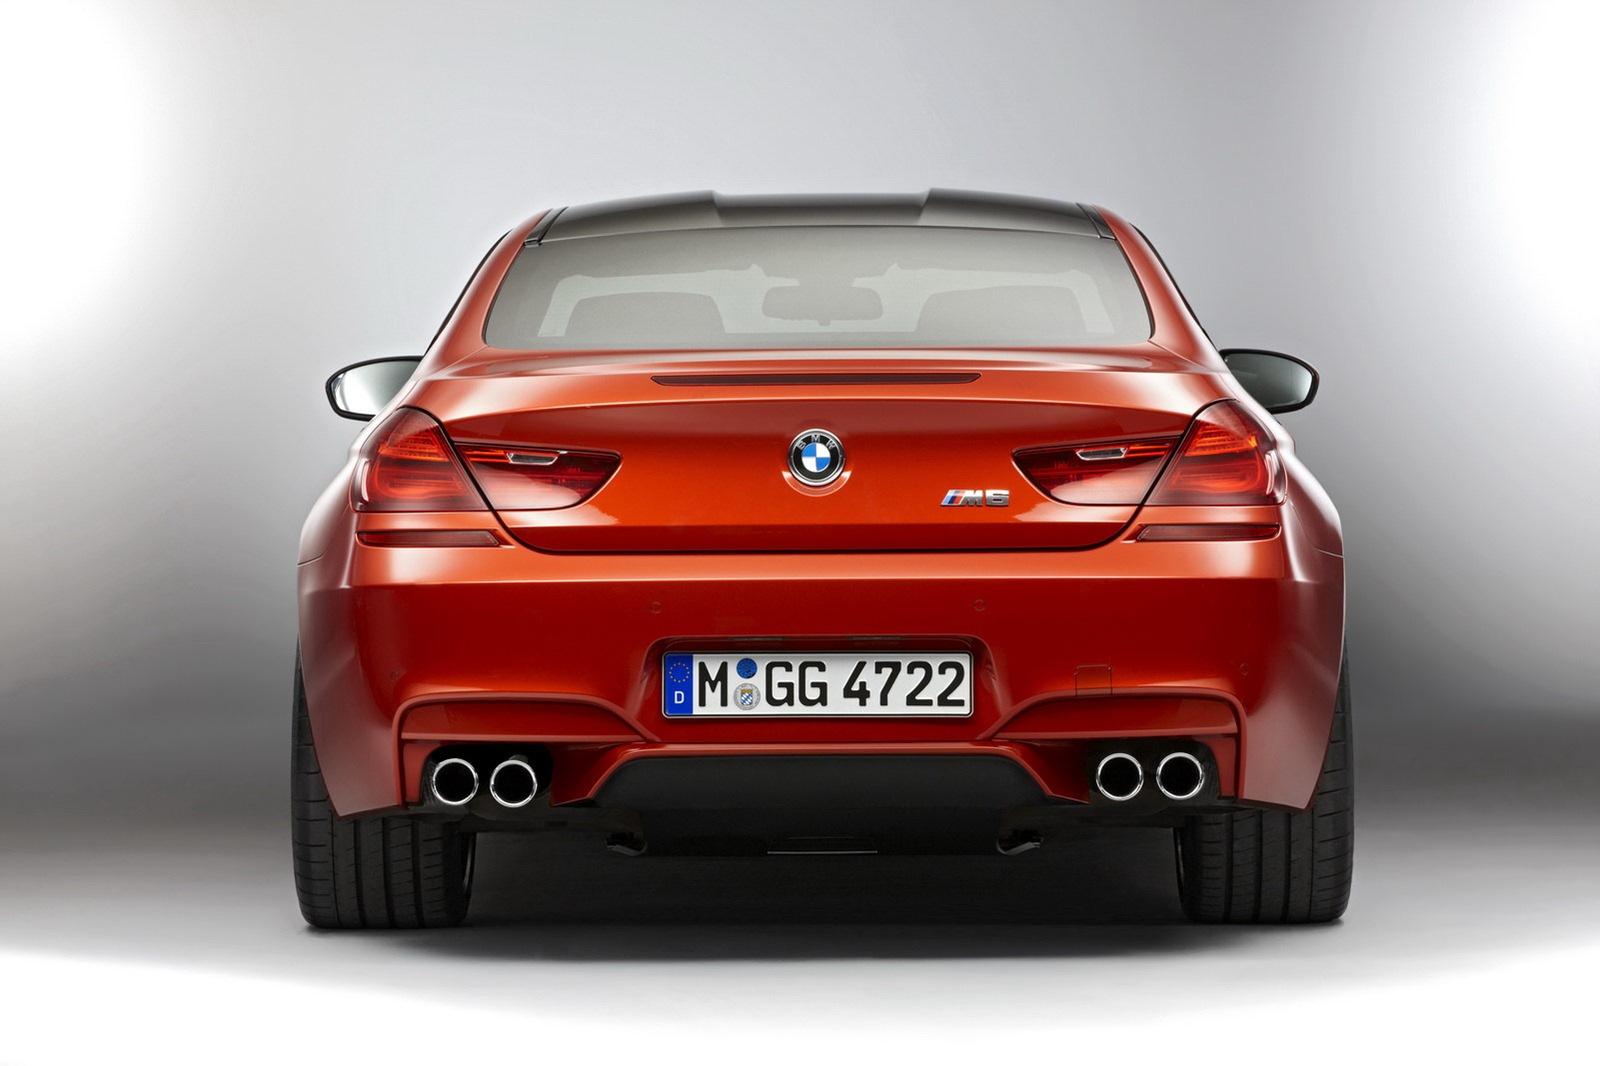 BMW M6 F12 Coupe 2012 rear wide track